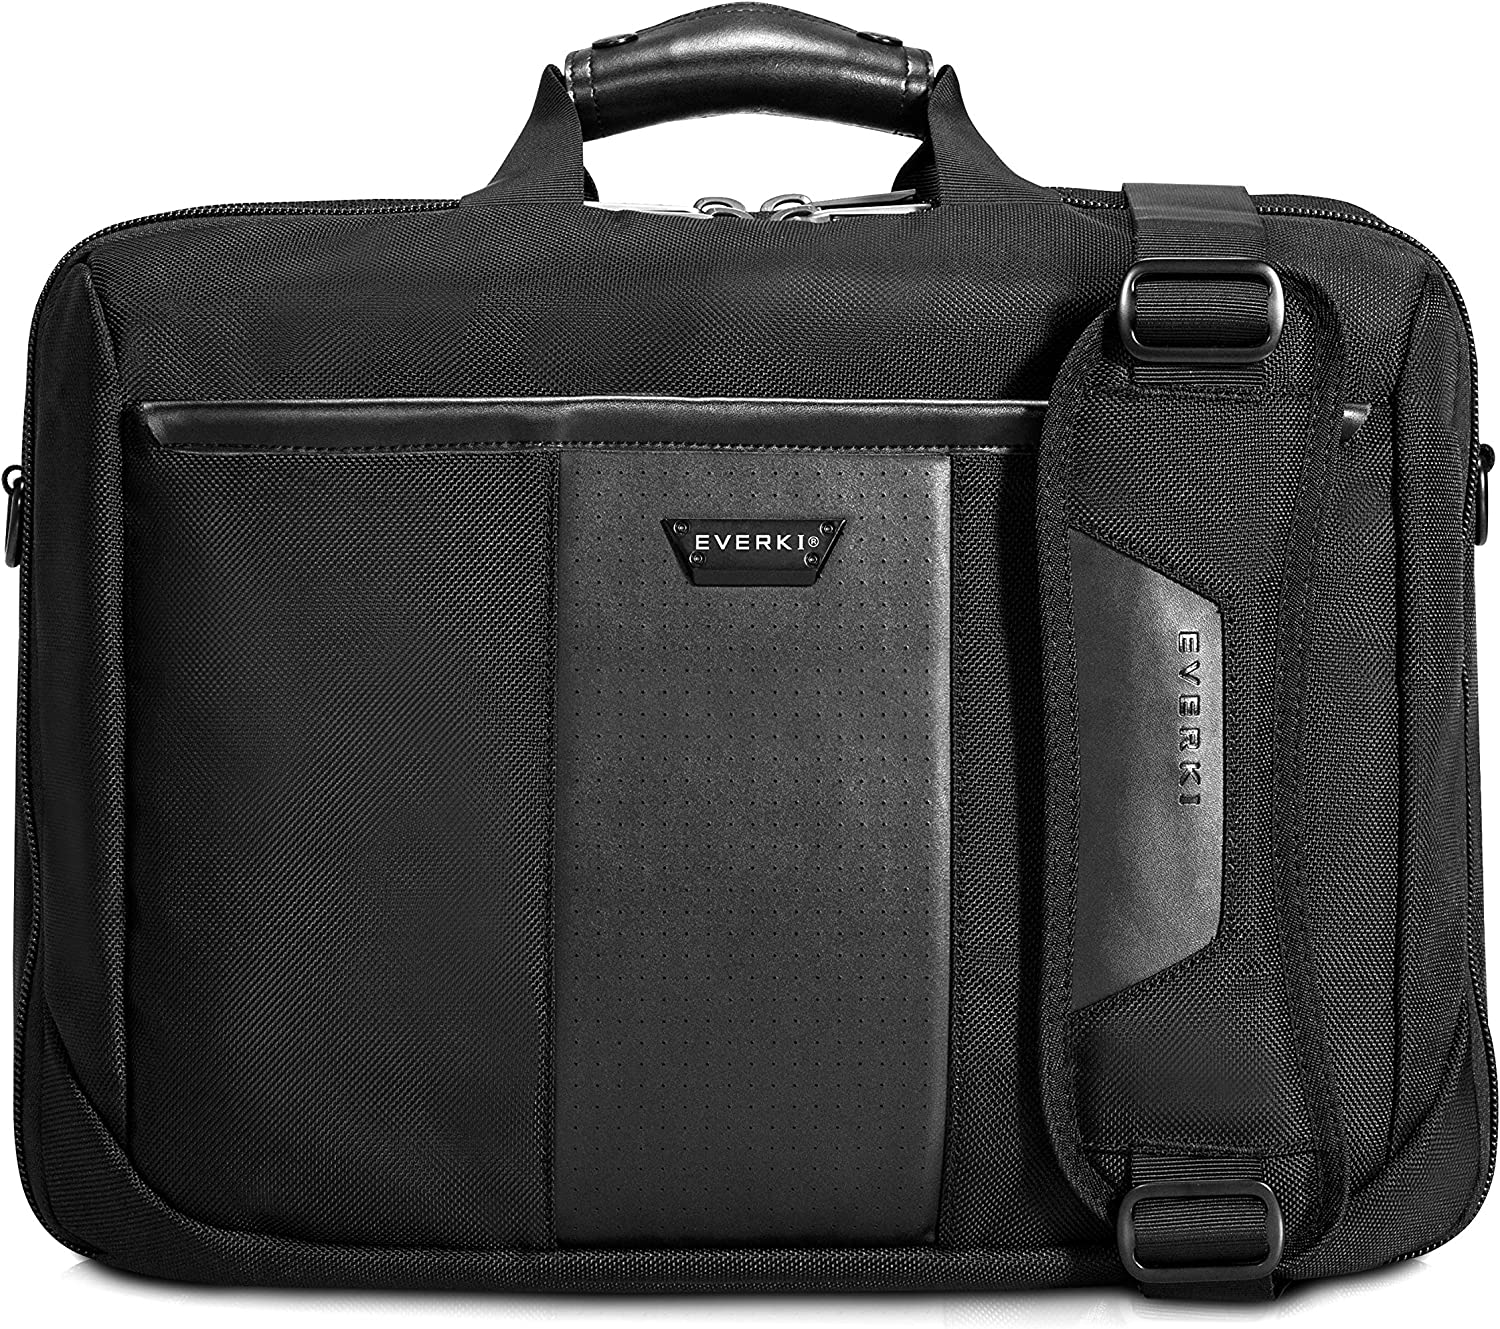 Everki Versa Premium Checkpoint Friendly Laptop Bag - Briefcase, Upto 17.3-Inch (EKB427BK17), Black